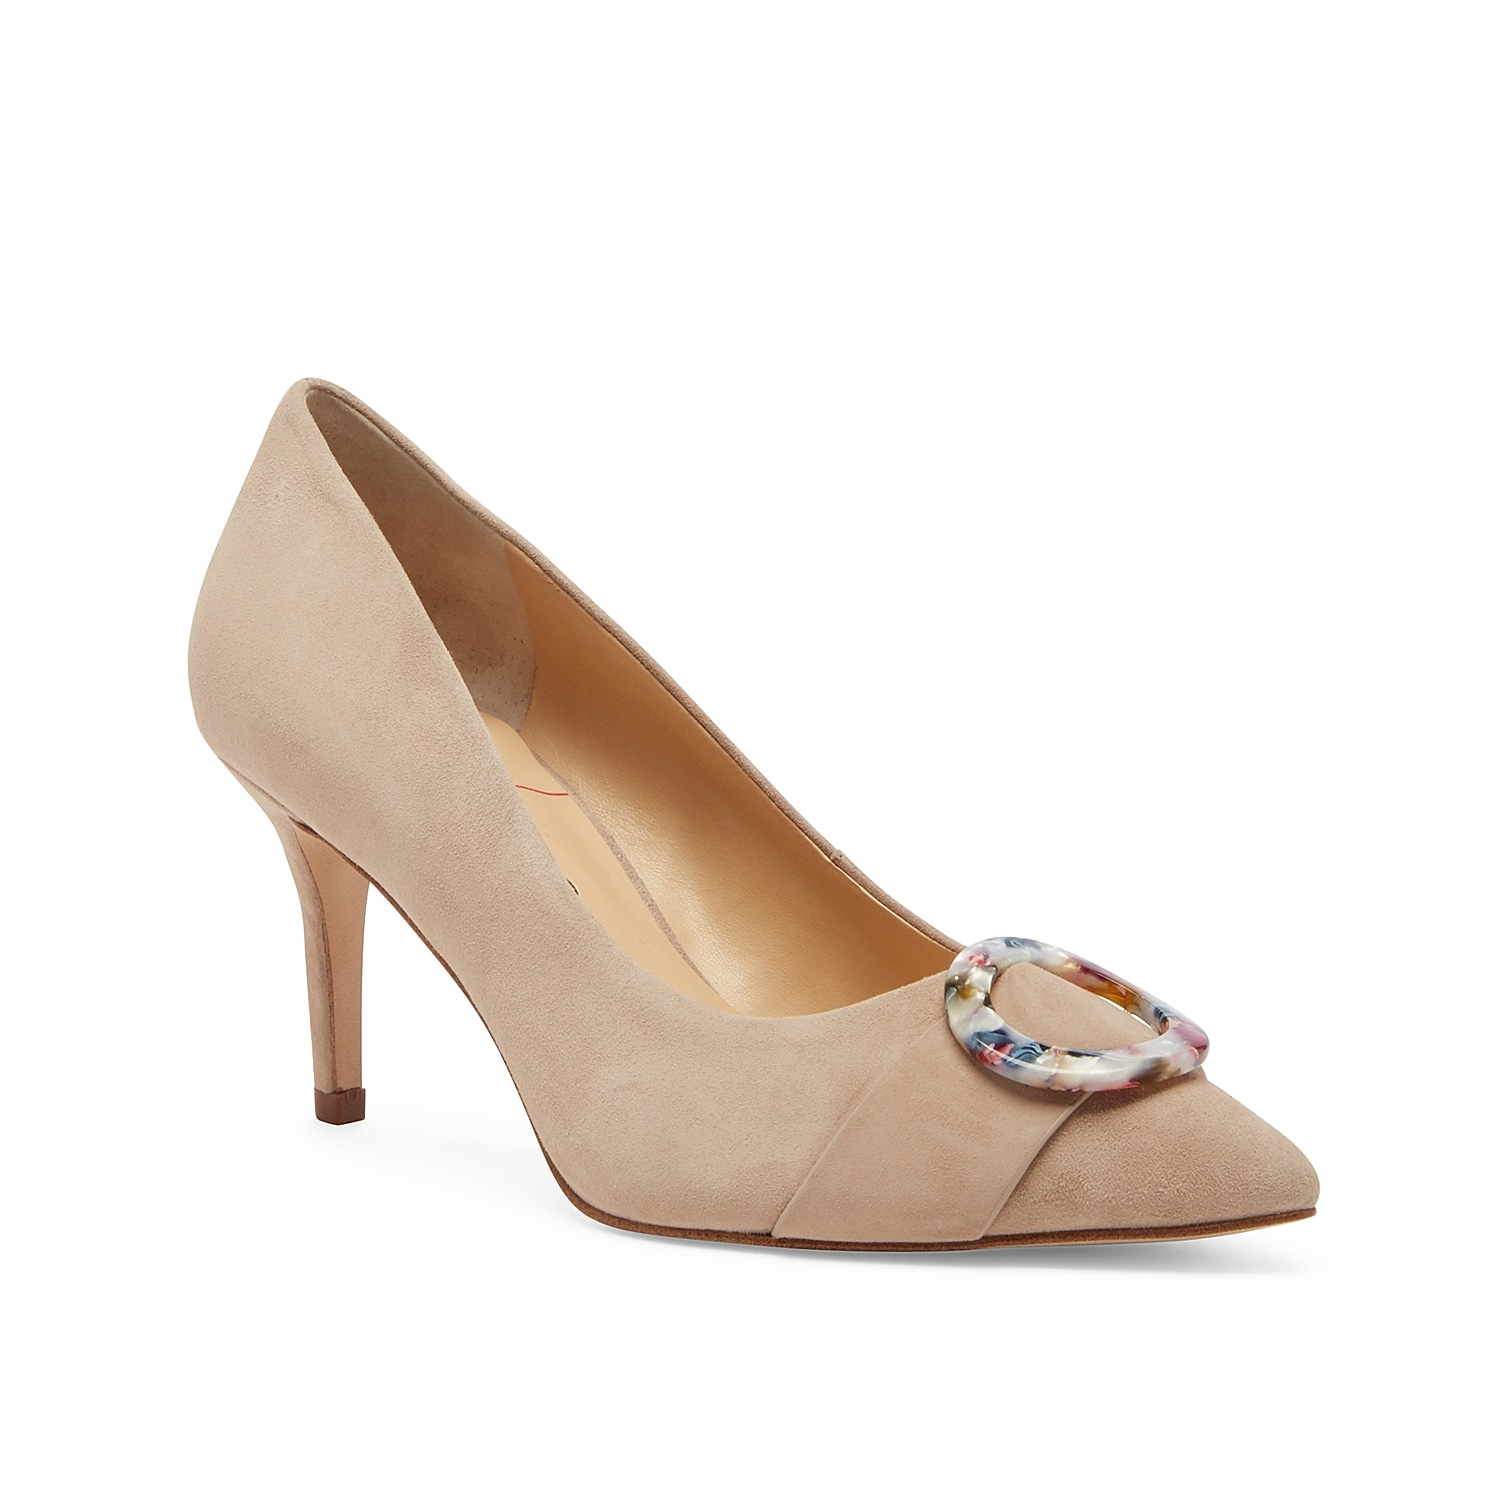 Tailored looks just got more sophisticated with the Ronya pump from Sole Society. This suede pair features an acrylic ring accent at the pointed toe for added style.